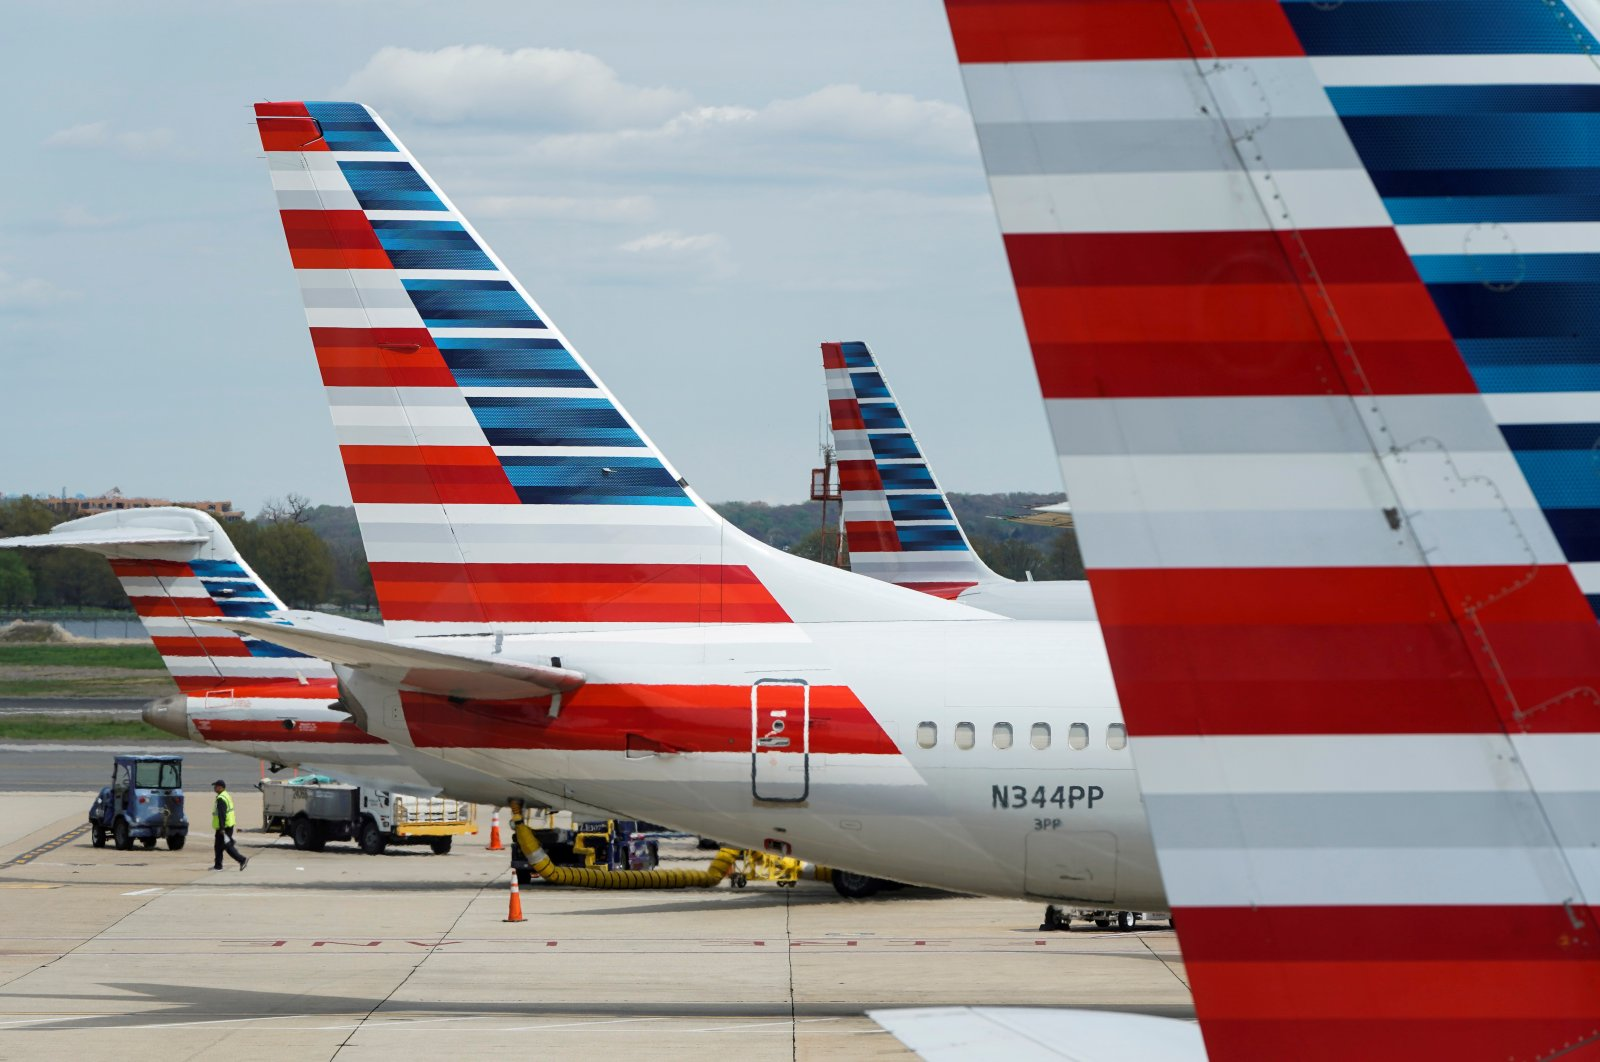 A member of a ground crew walks past American Airlines planes parked at the gate during the coronavirus disease (COVID-19) outbreak at Ronald Reagan National Airport in Washington, U.S., April 5, 2020. (Reuters Photo)